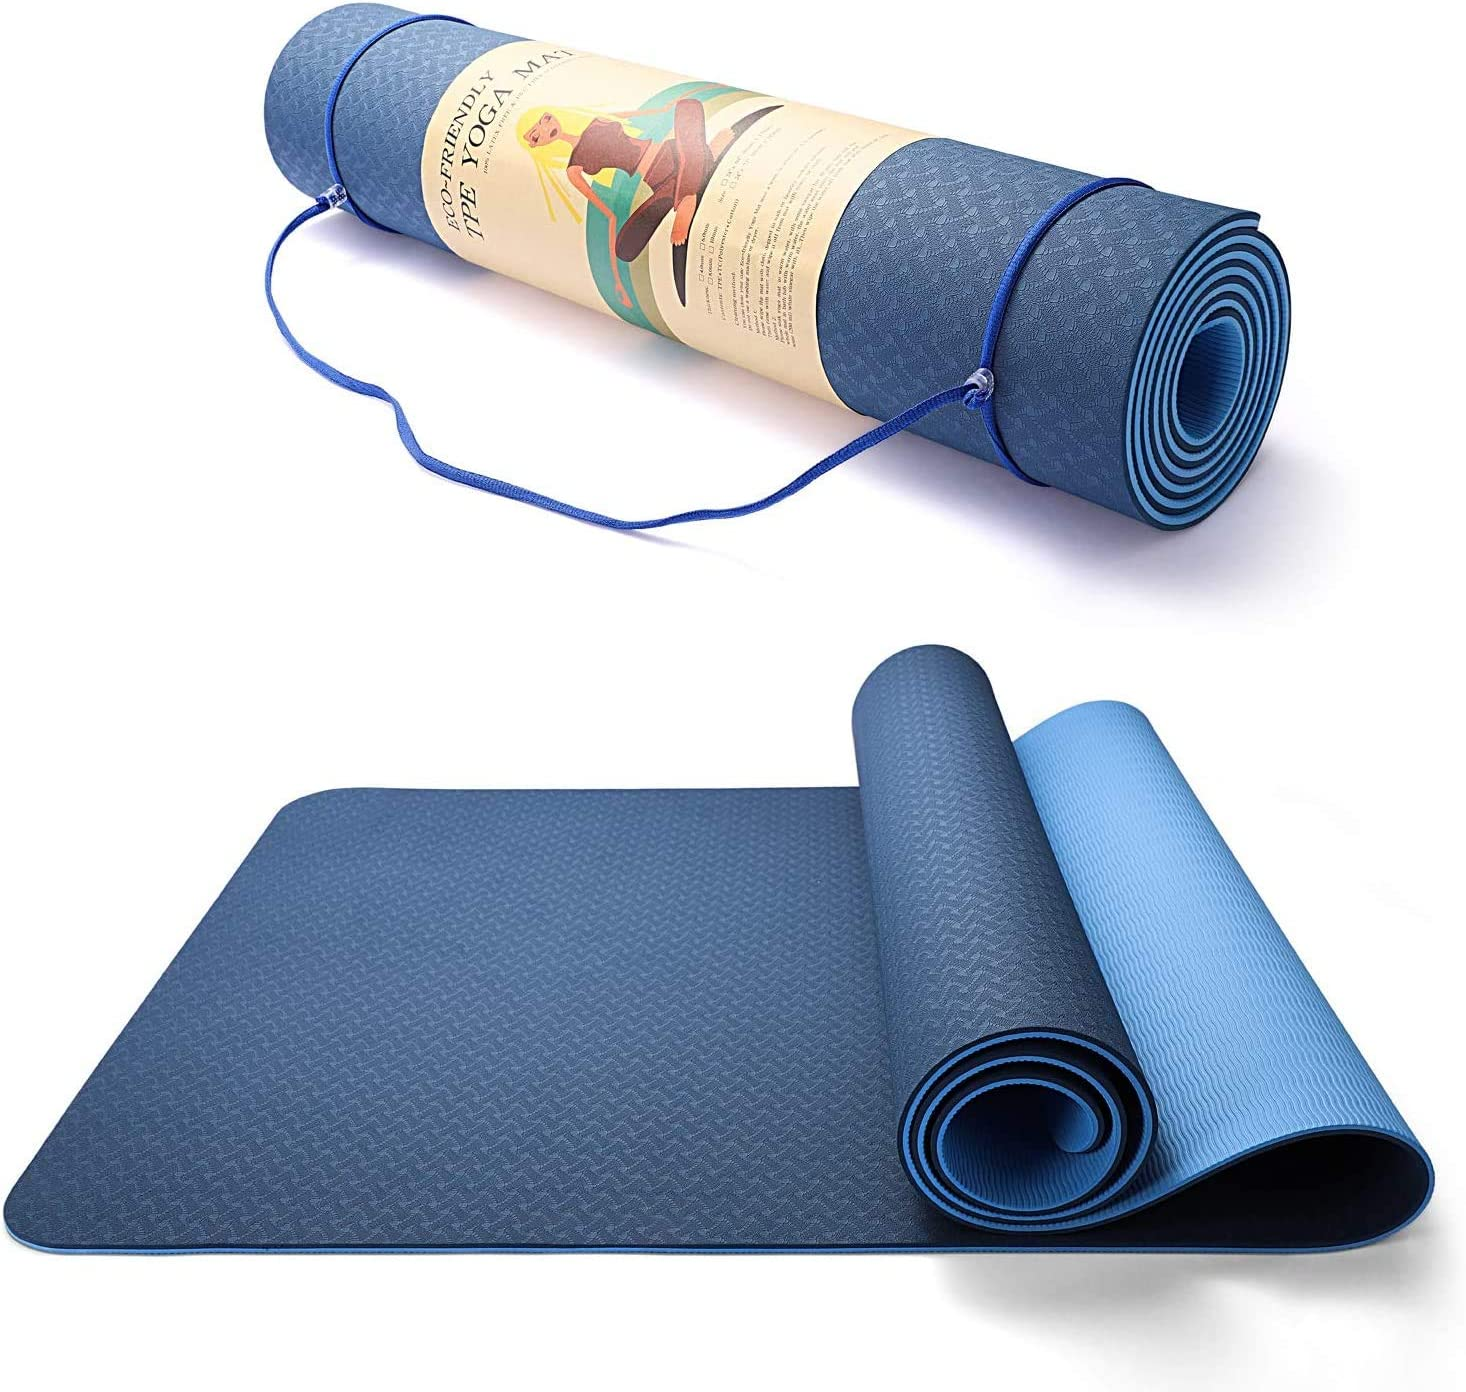 LACHO 1 3 Inch Yoga Mat 8mm Max Sales results No. 1 77% OFF Thick Fr Exercise Extra Fitness Eco